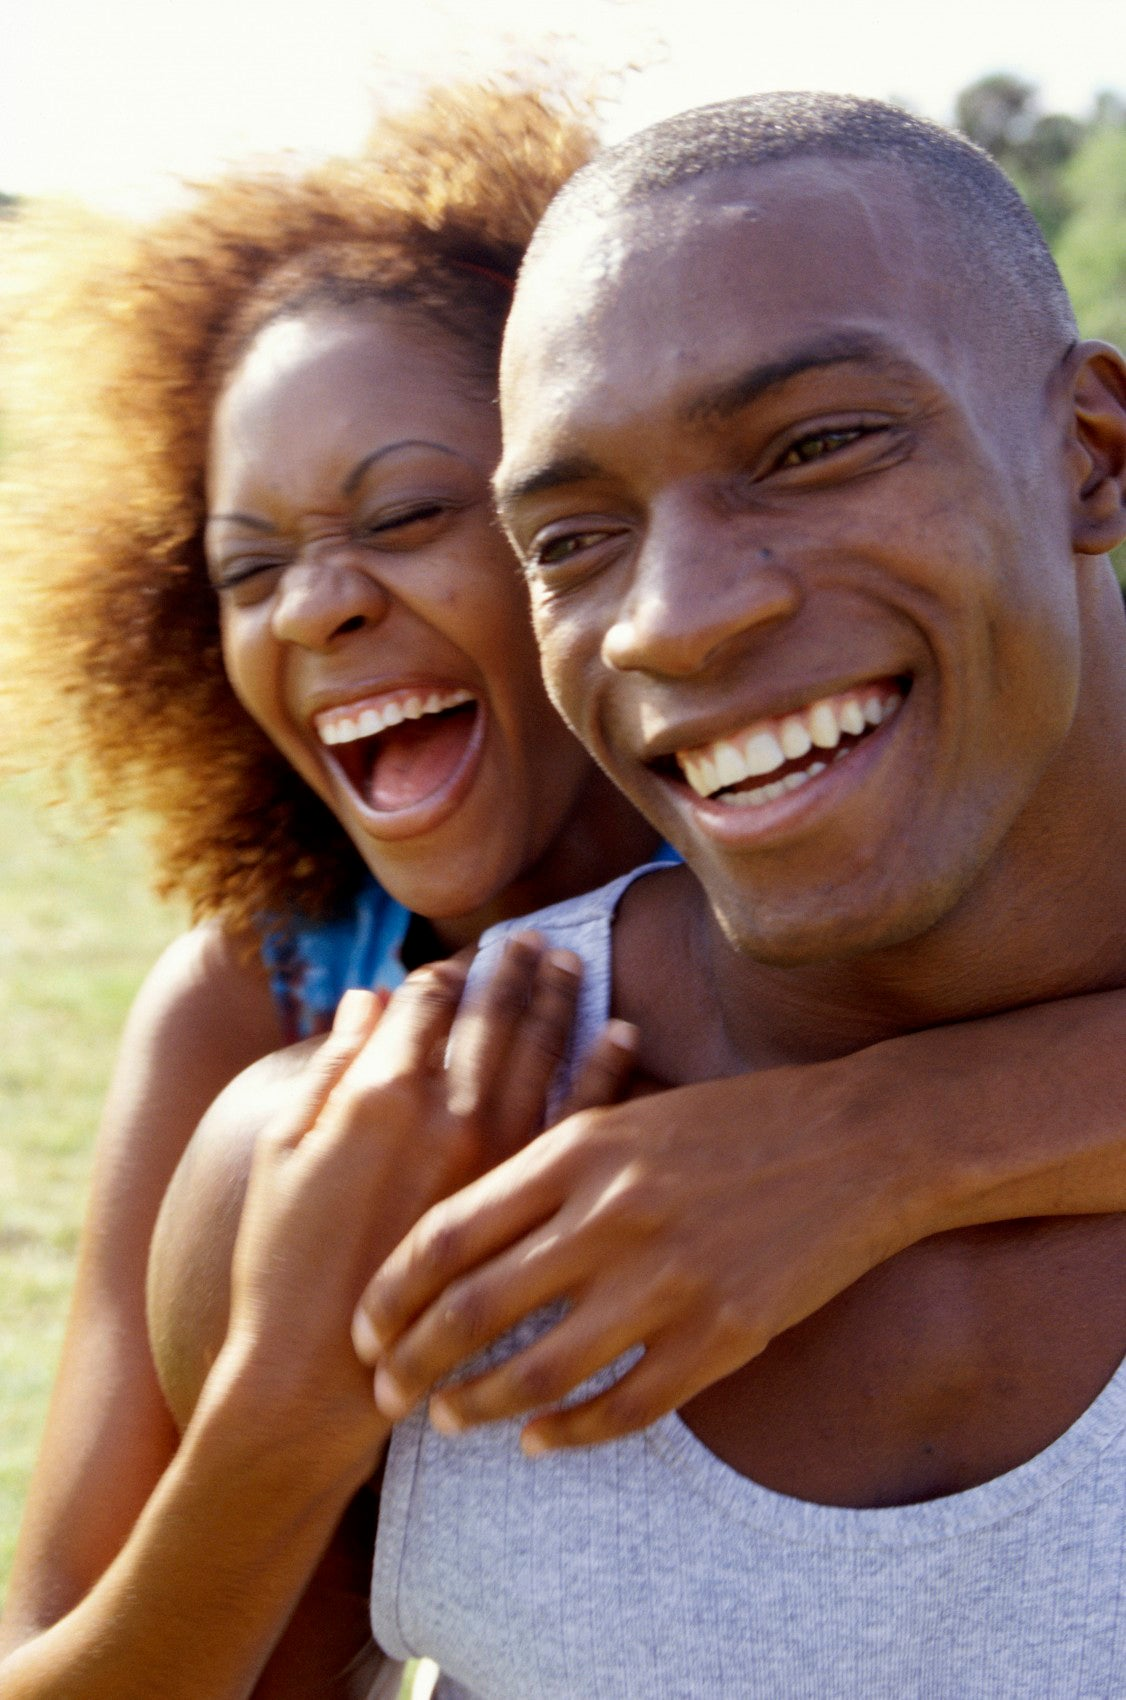 All The Single Ladies: How to Meet A New Man At ESSENCE Festival